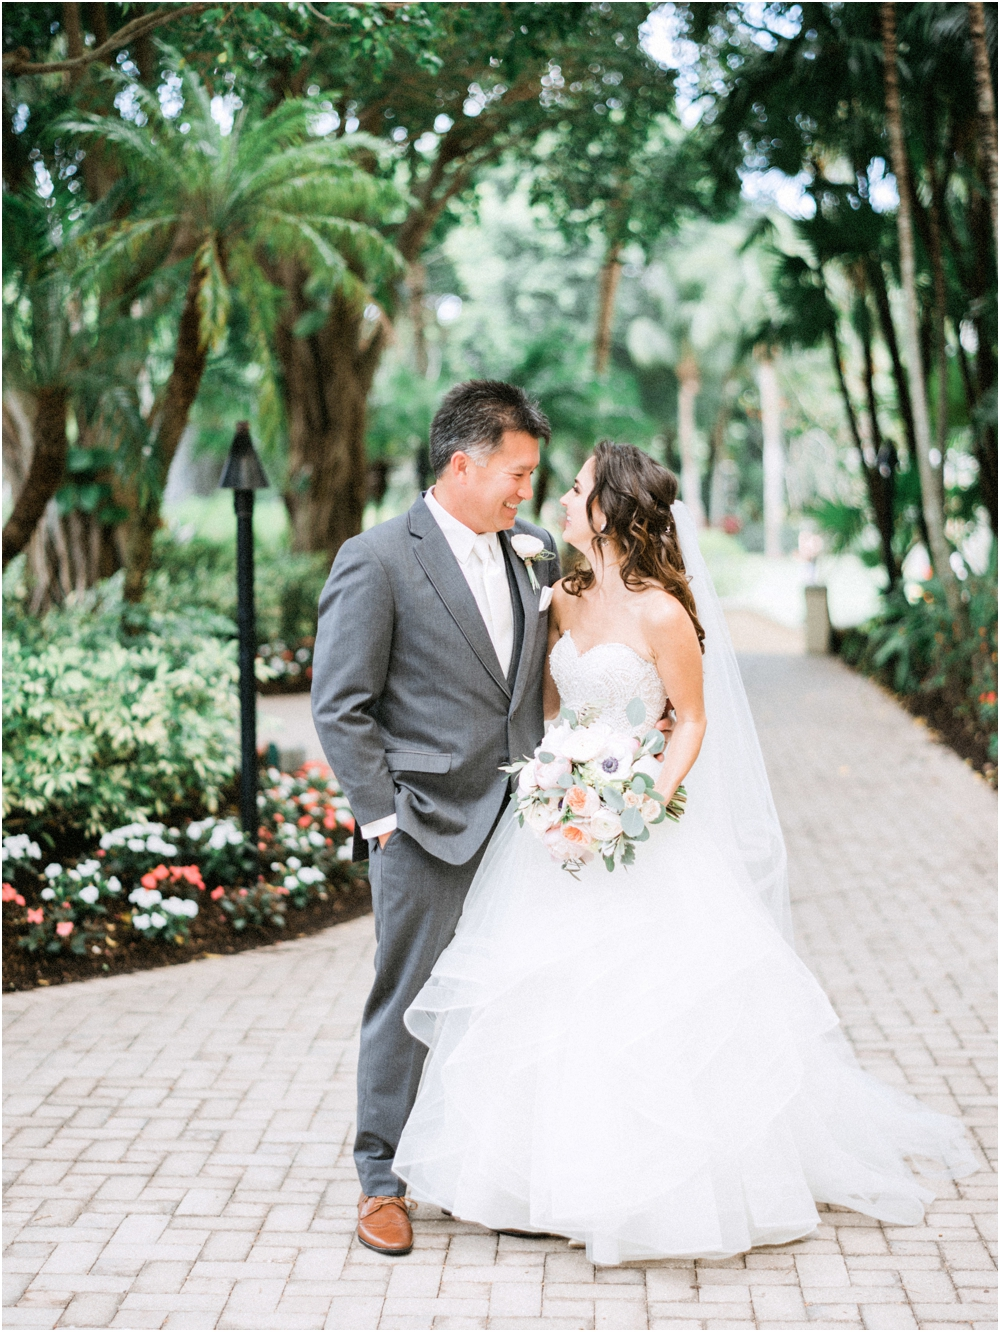 Film_Wedding_Photographer_Hyatt_Regency_Coconut_Point_Wedding_1169.jpg